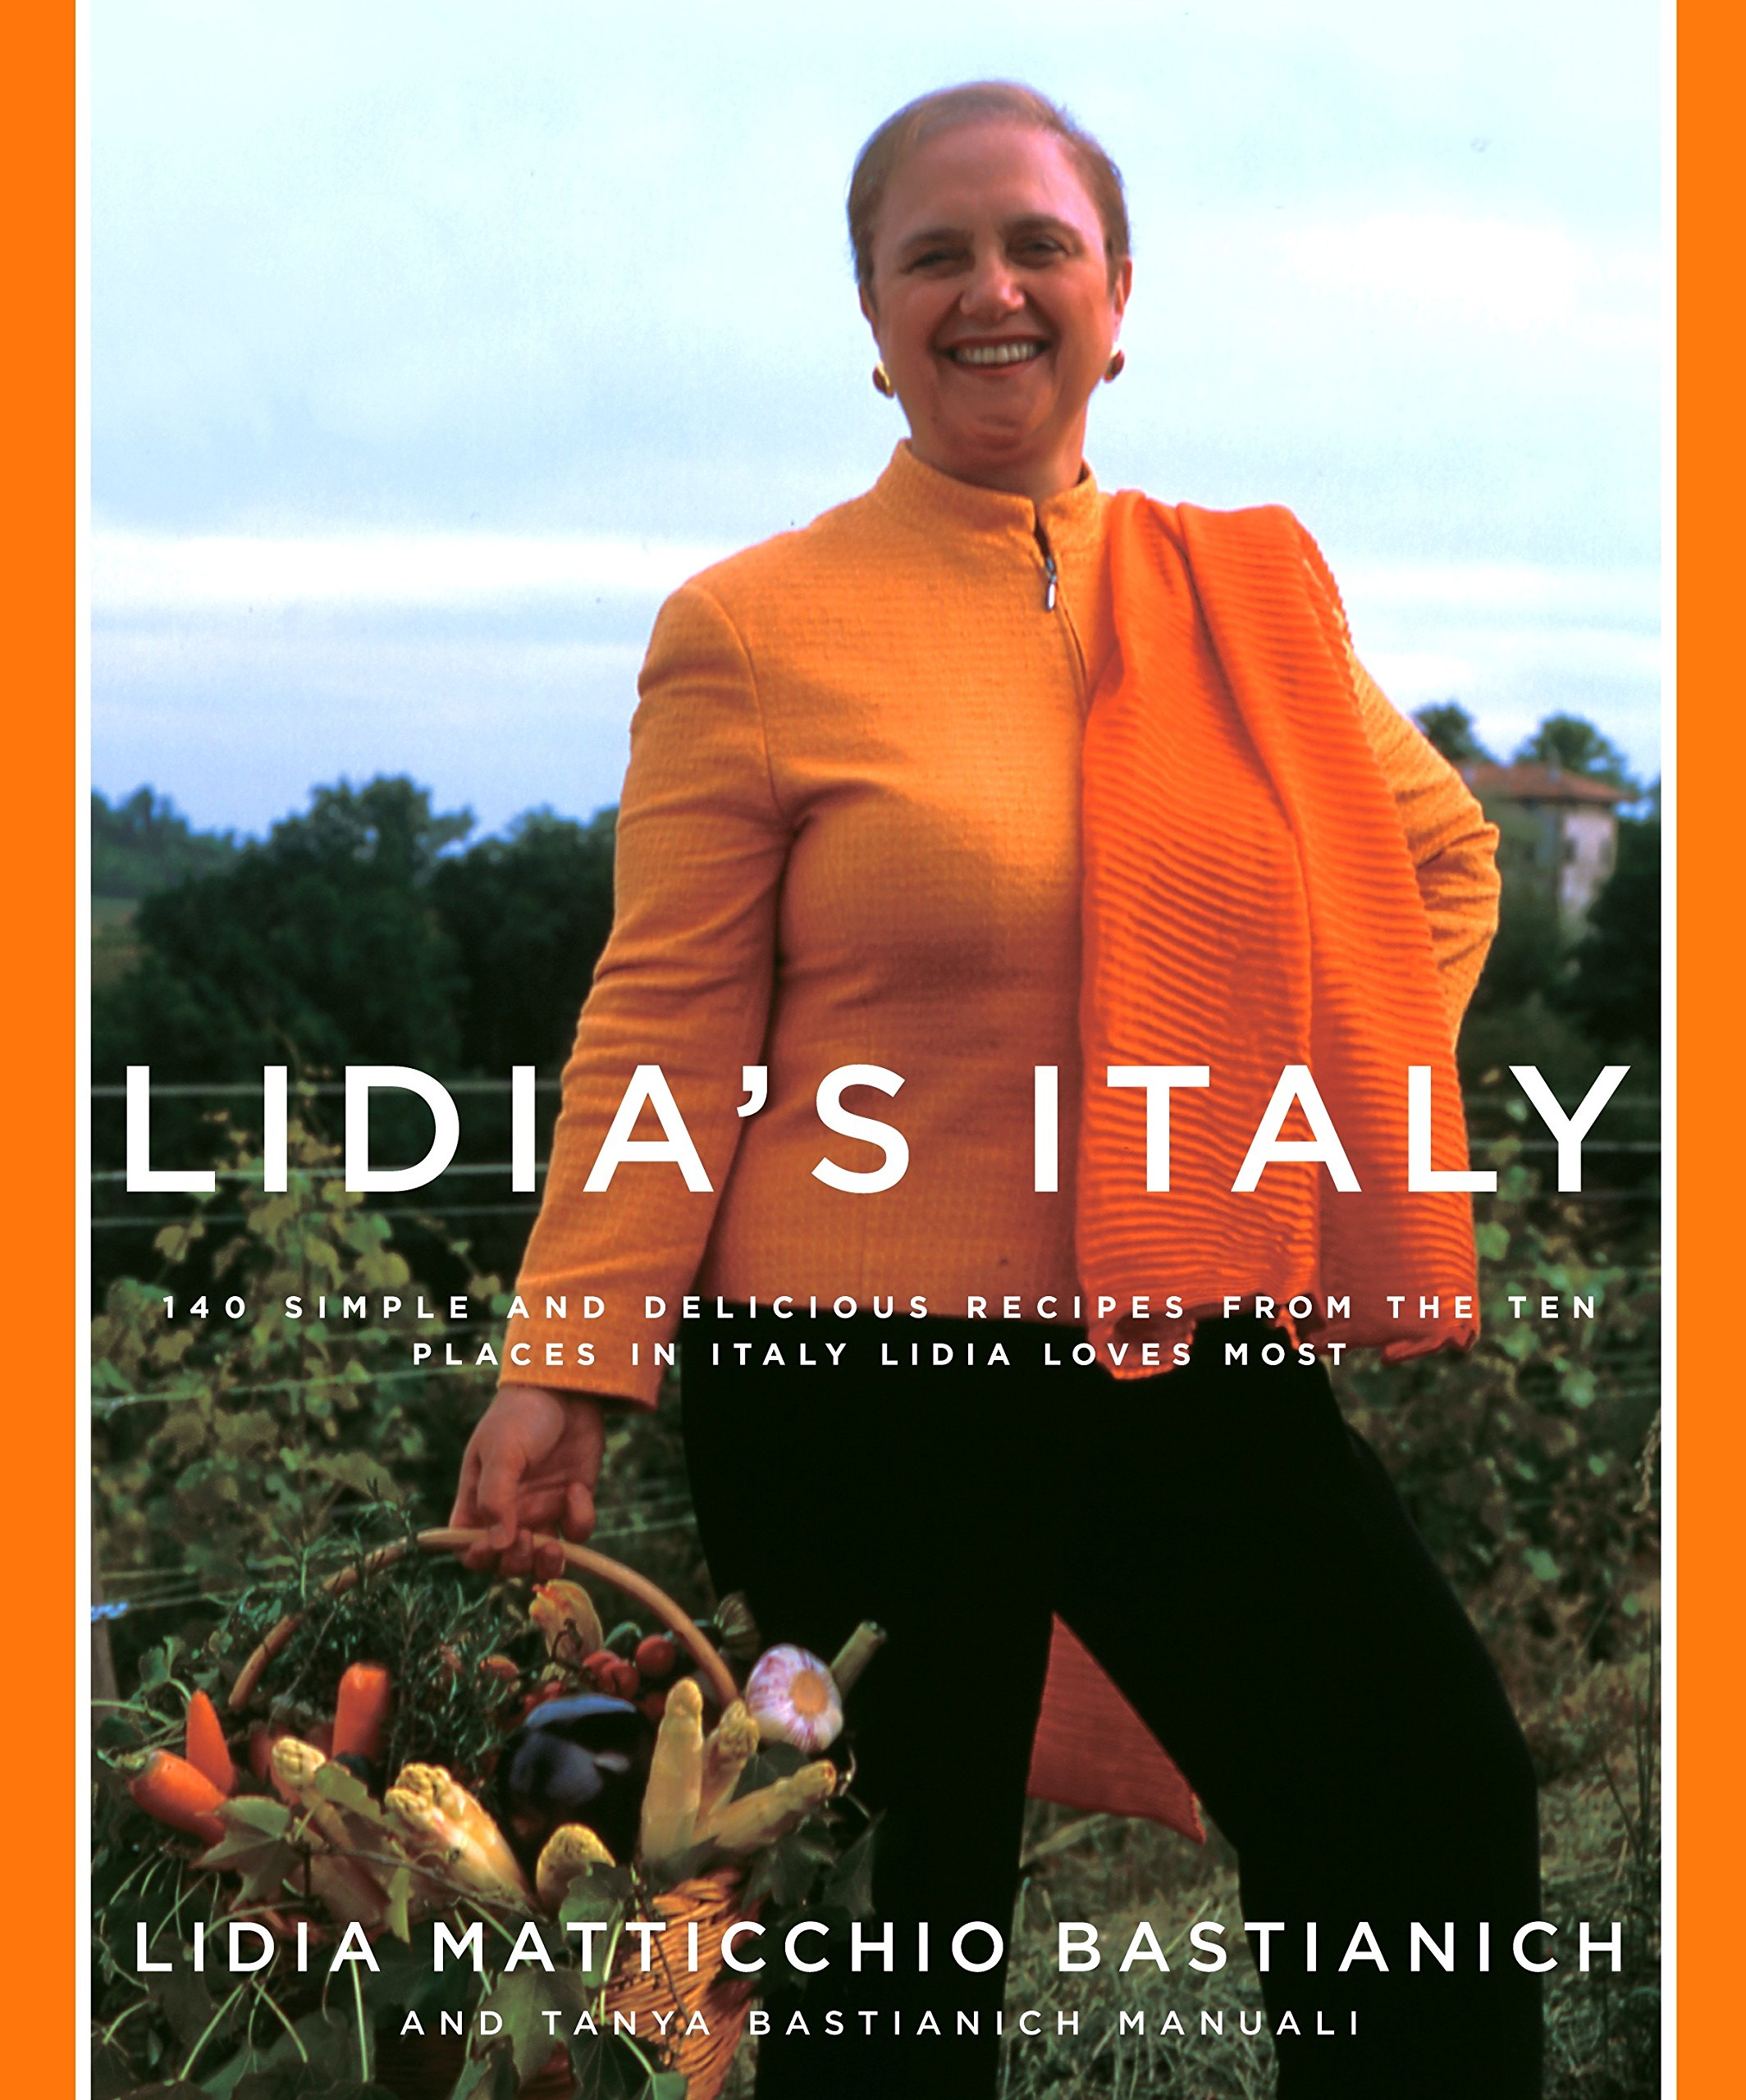 Image OfLidia's Italy: 140 Simple And Delicious Recipes From The Ten Places In Italy Lidia Loves Most